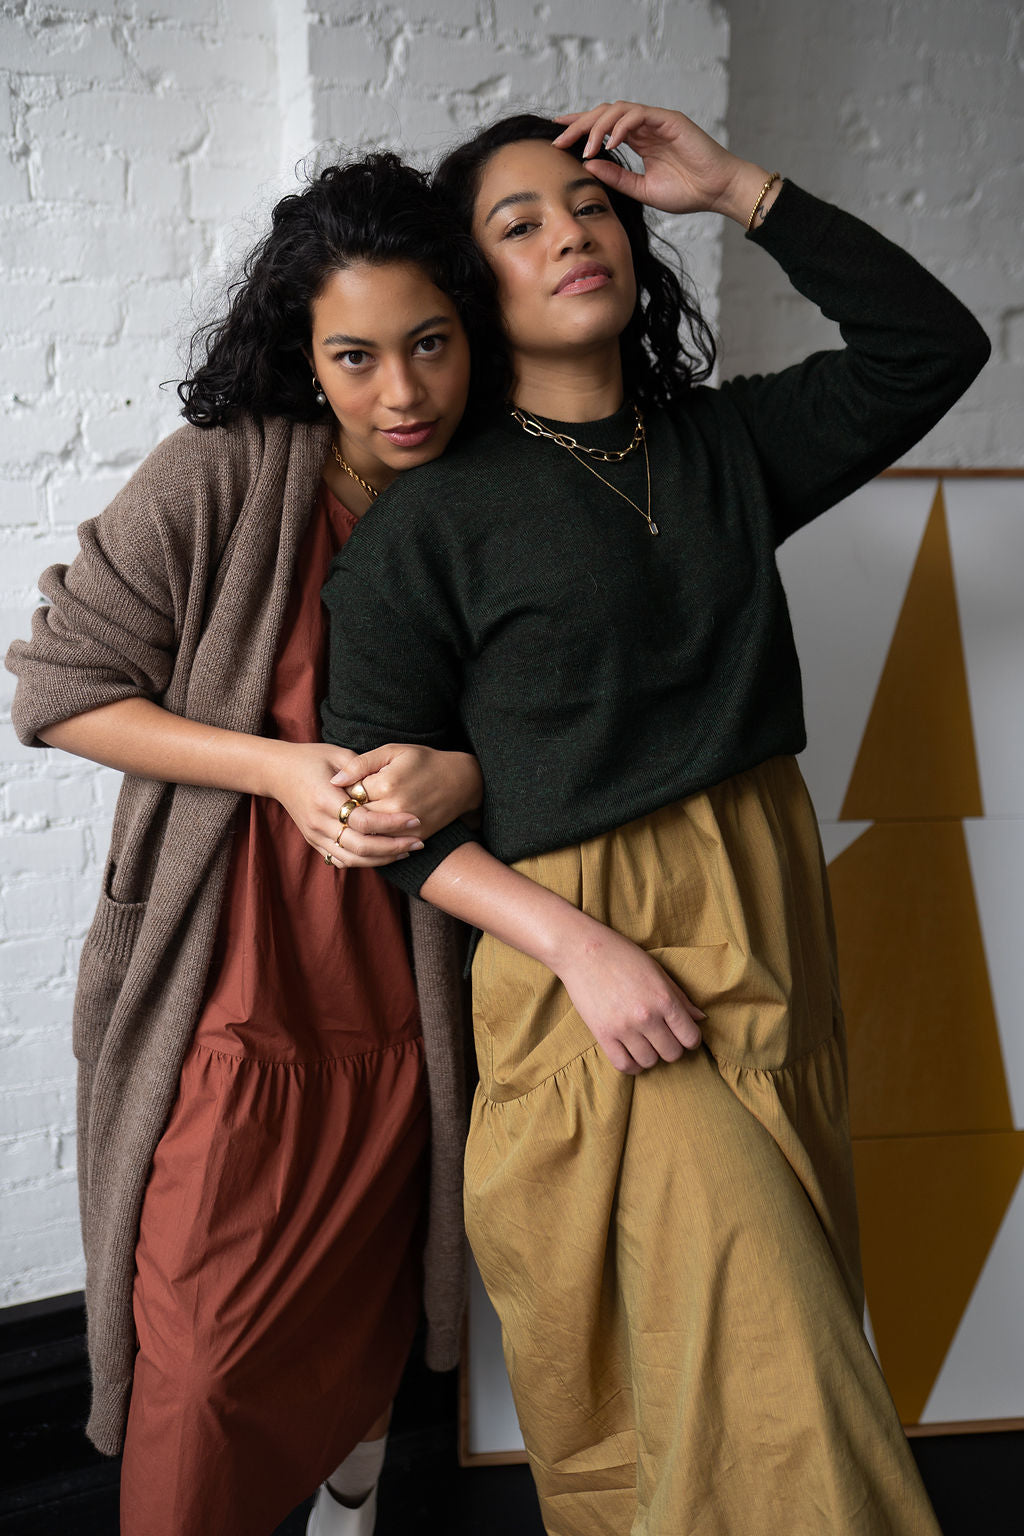 twin fashion bloggers embraced wearing tiered long cotton dresses in rust and yellow under oatmeal color cardigan and dark green pullover sweater white brick wall black floor art leaning against the wall gold jewelry